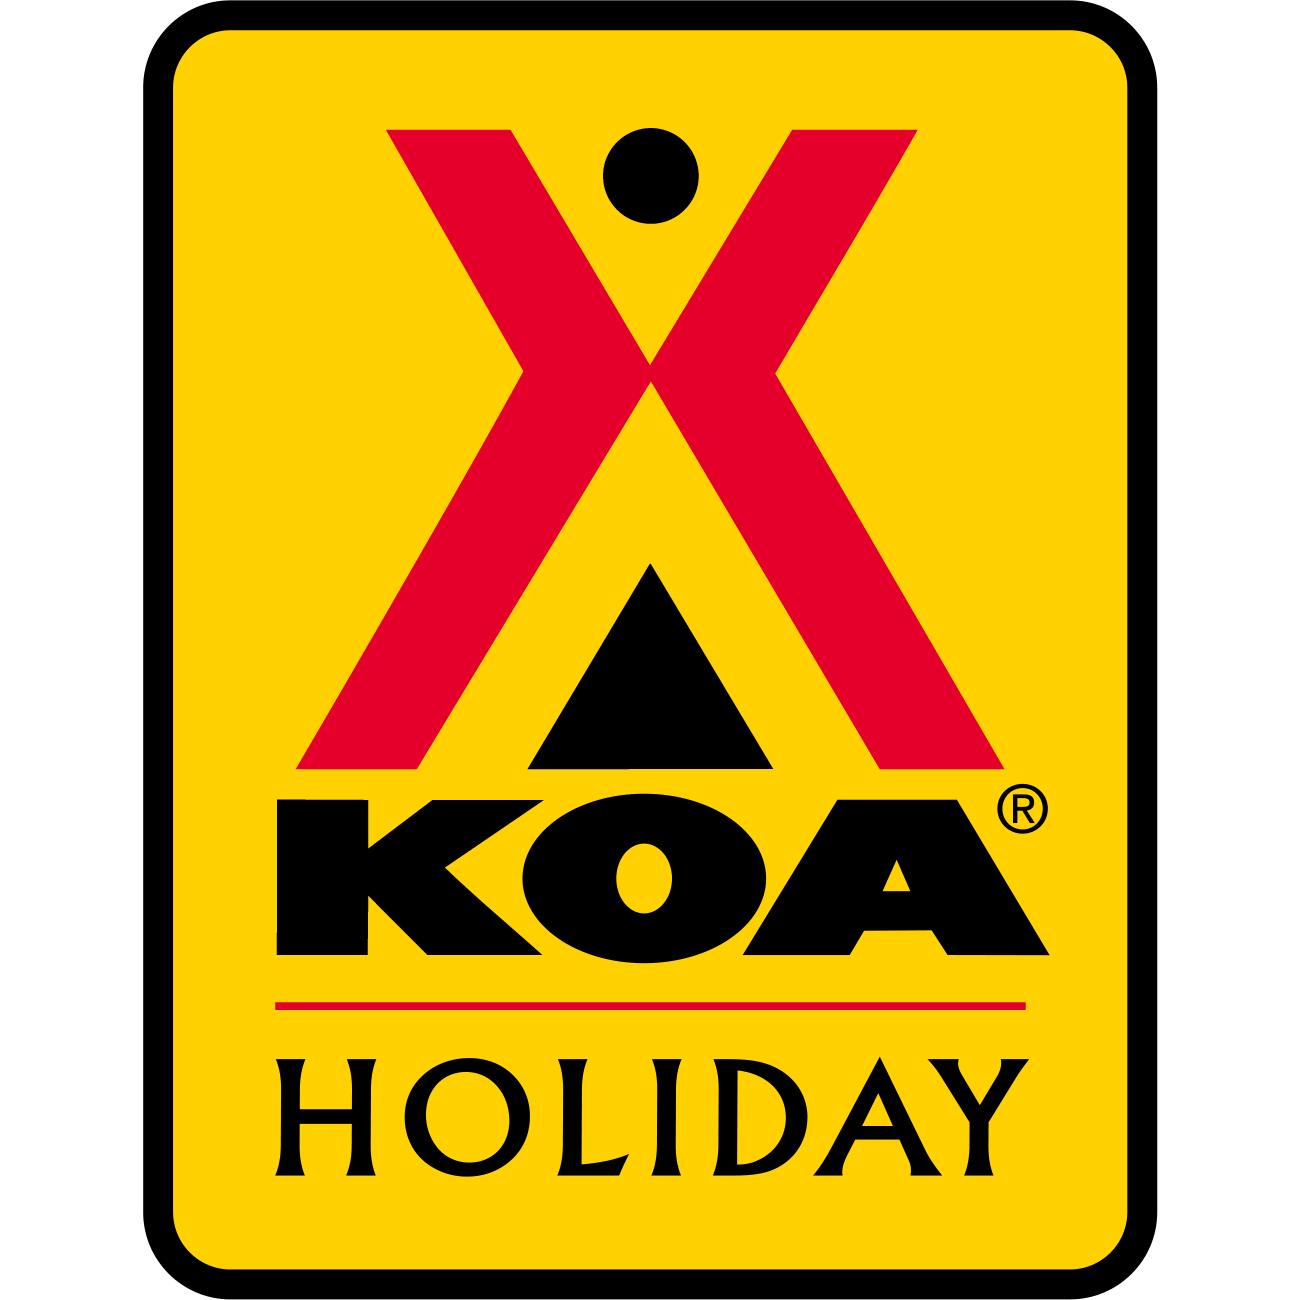 Oklahoma City East KOA Holiday